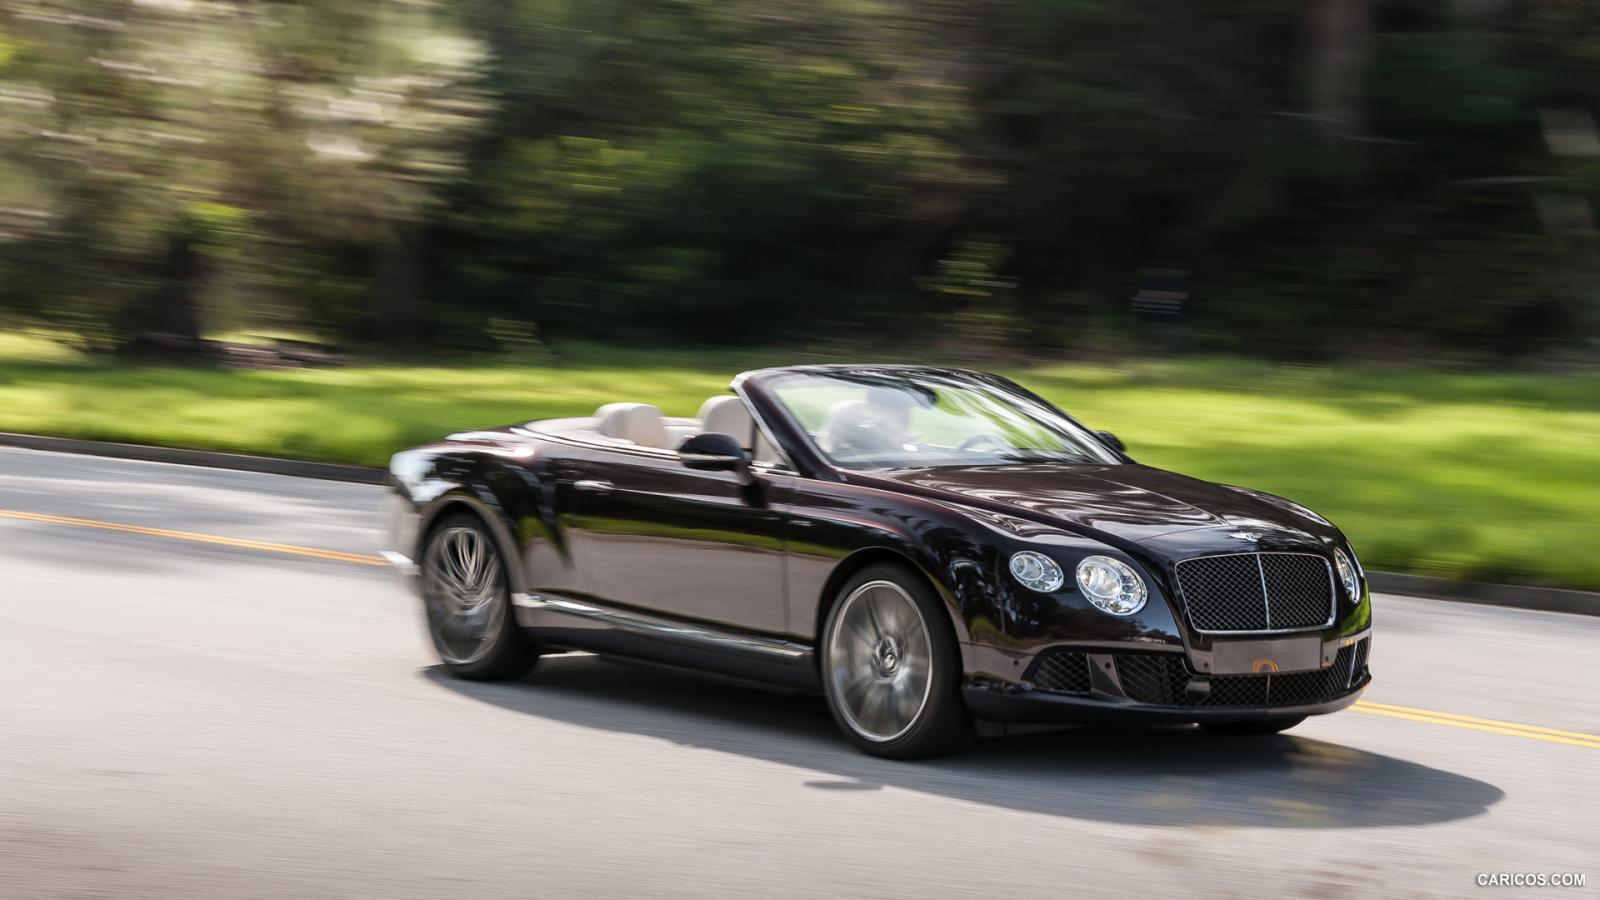 2014 Bentley Continental Gt Speed Information And Photos